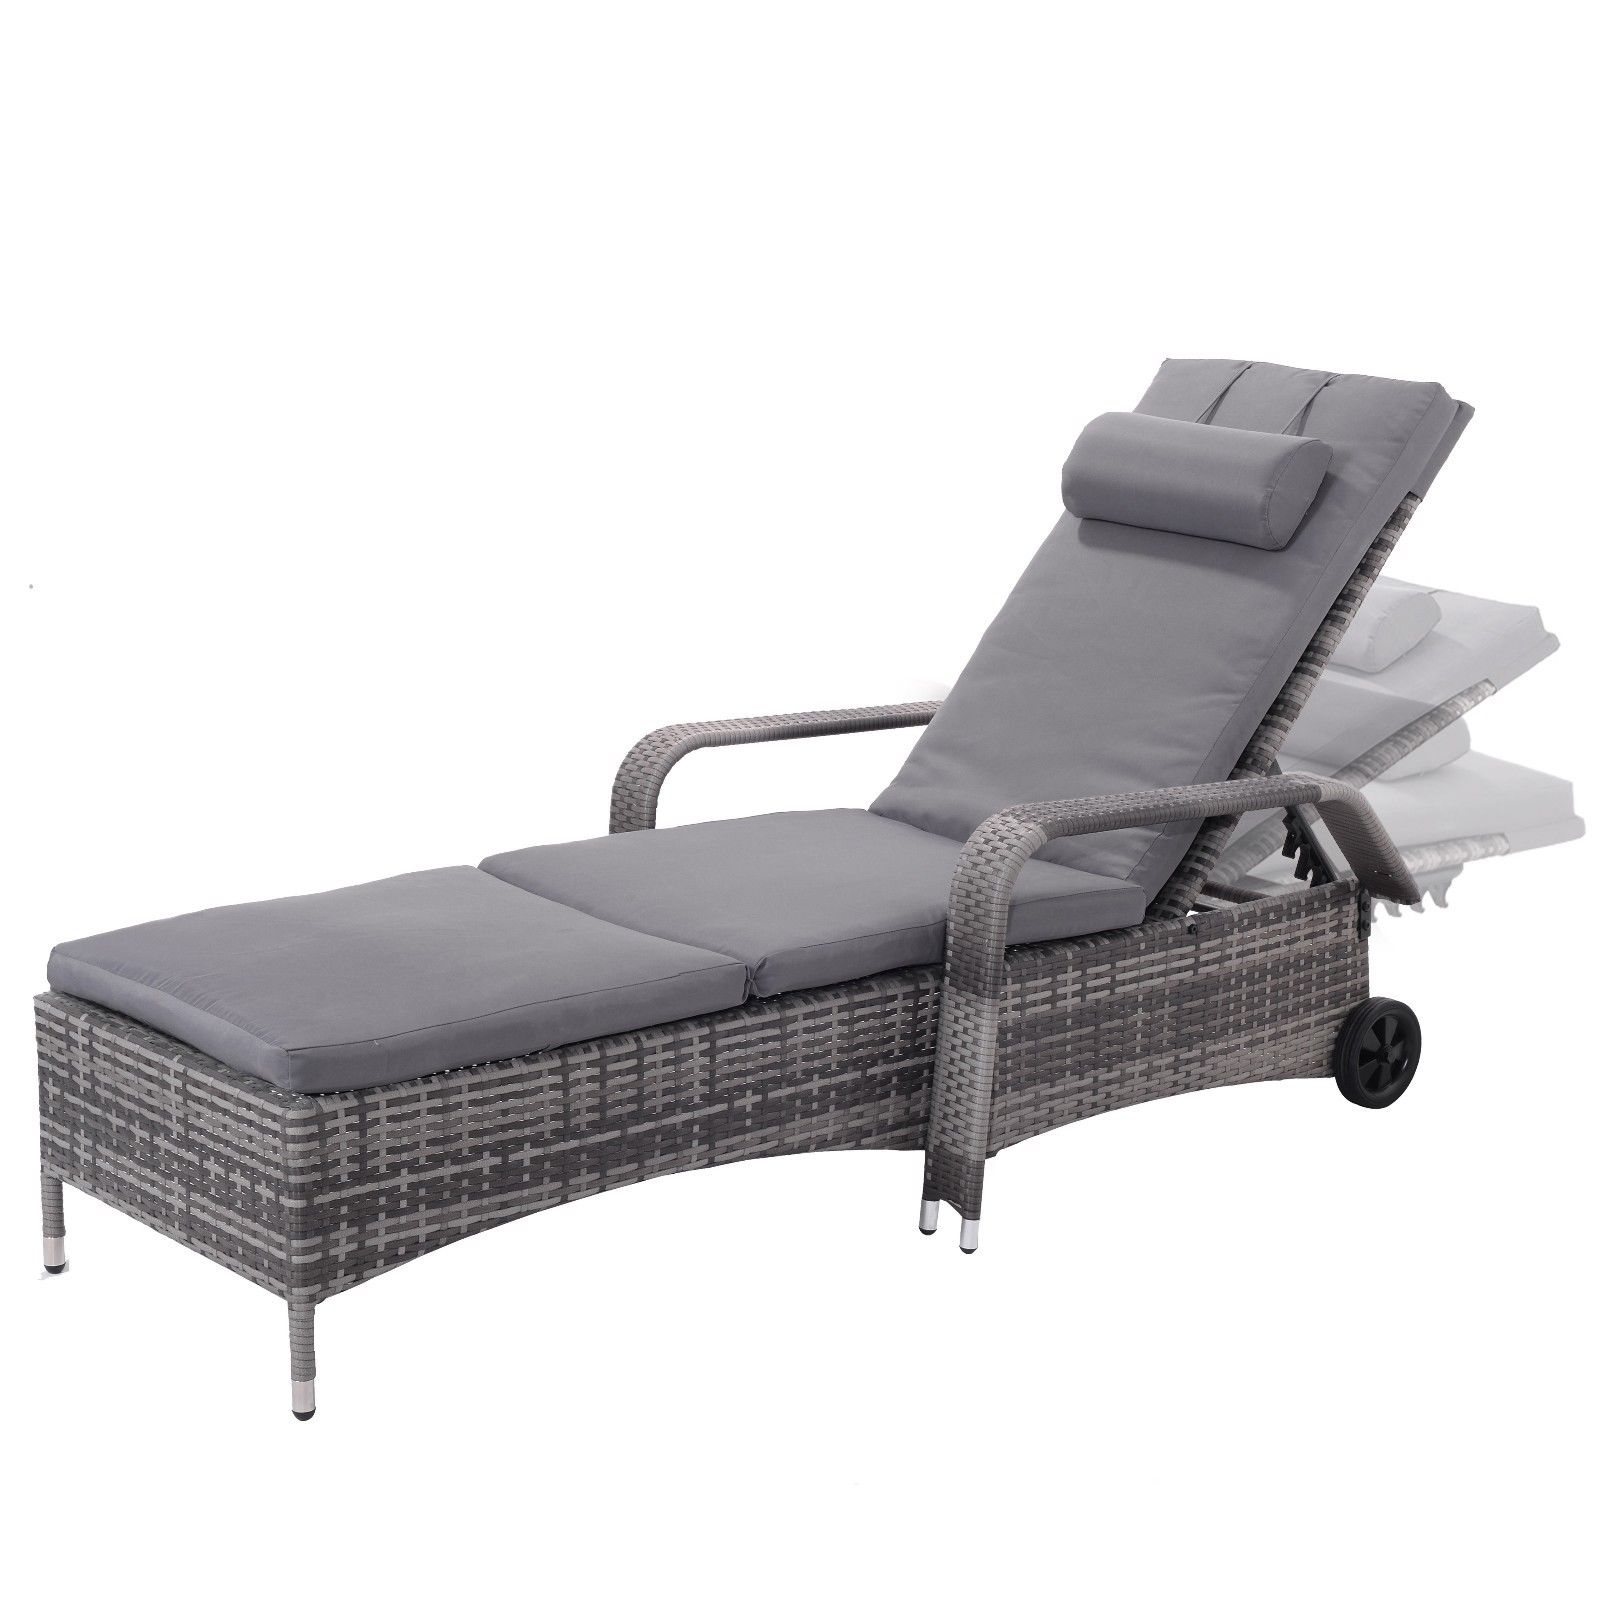 Giantex outdoor chaise lounge chair recliner cushioned for Patio furniture chaise lounge